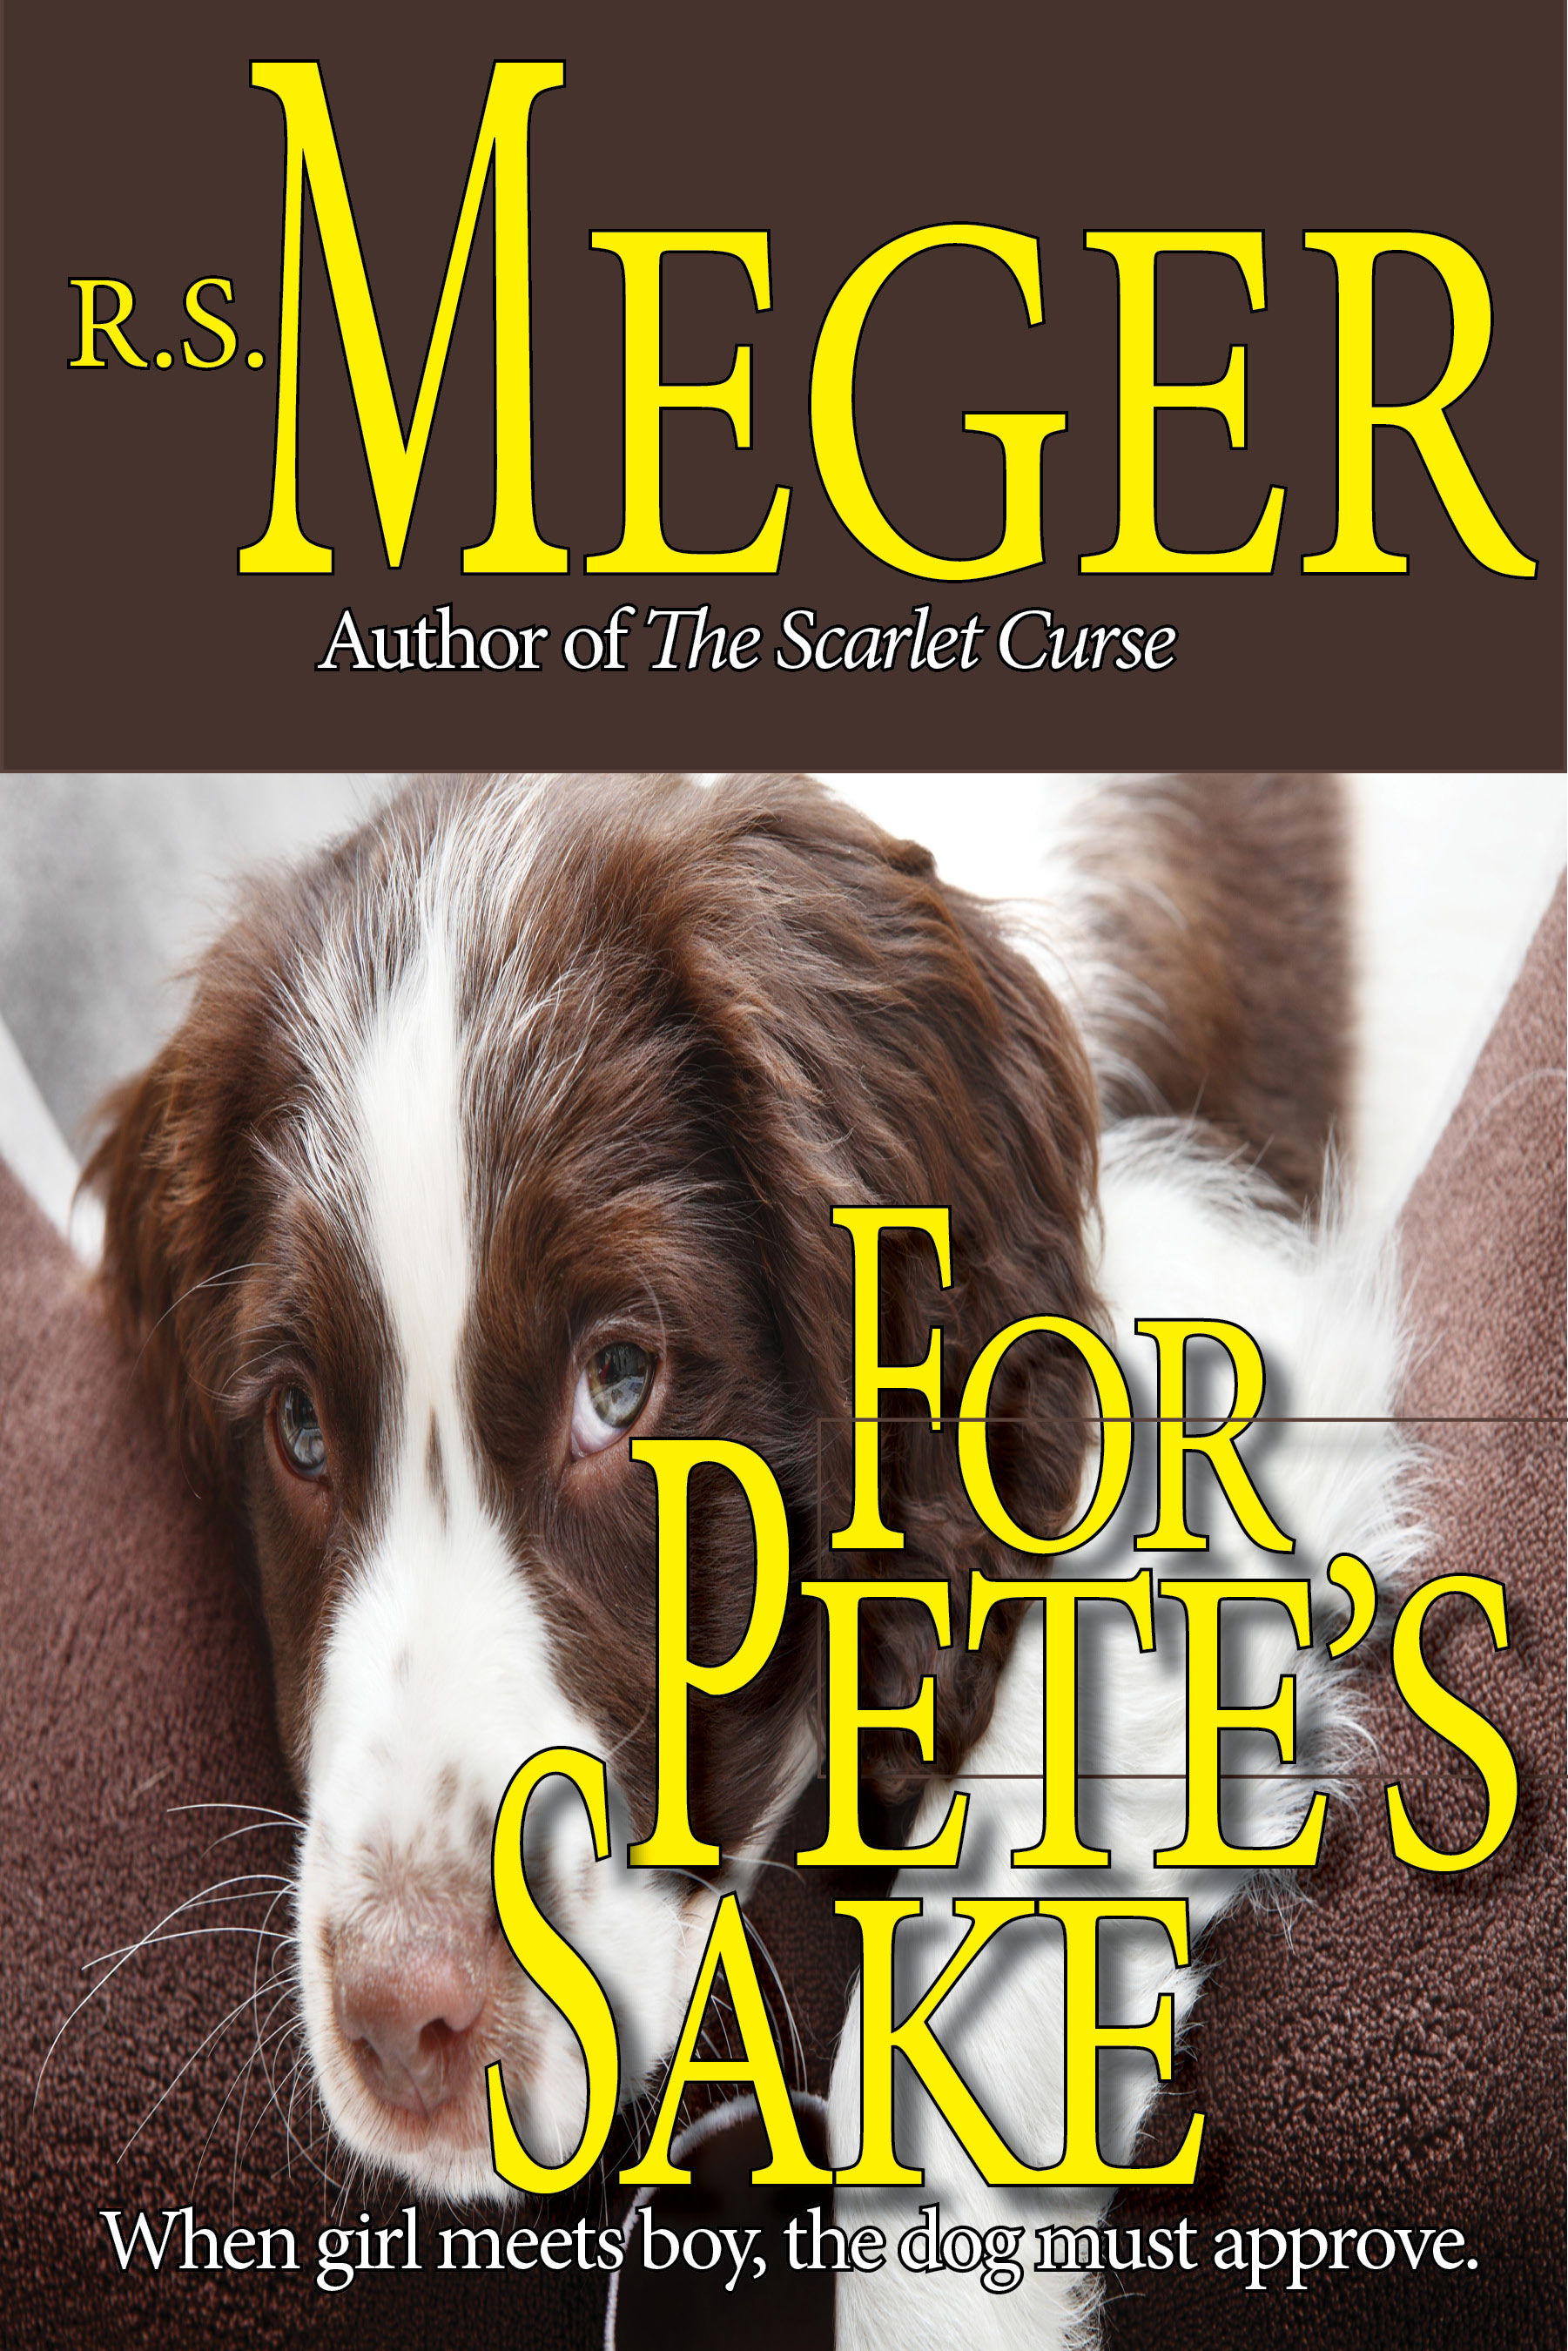 Rita S. Meger - For Pete's Sake